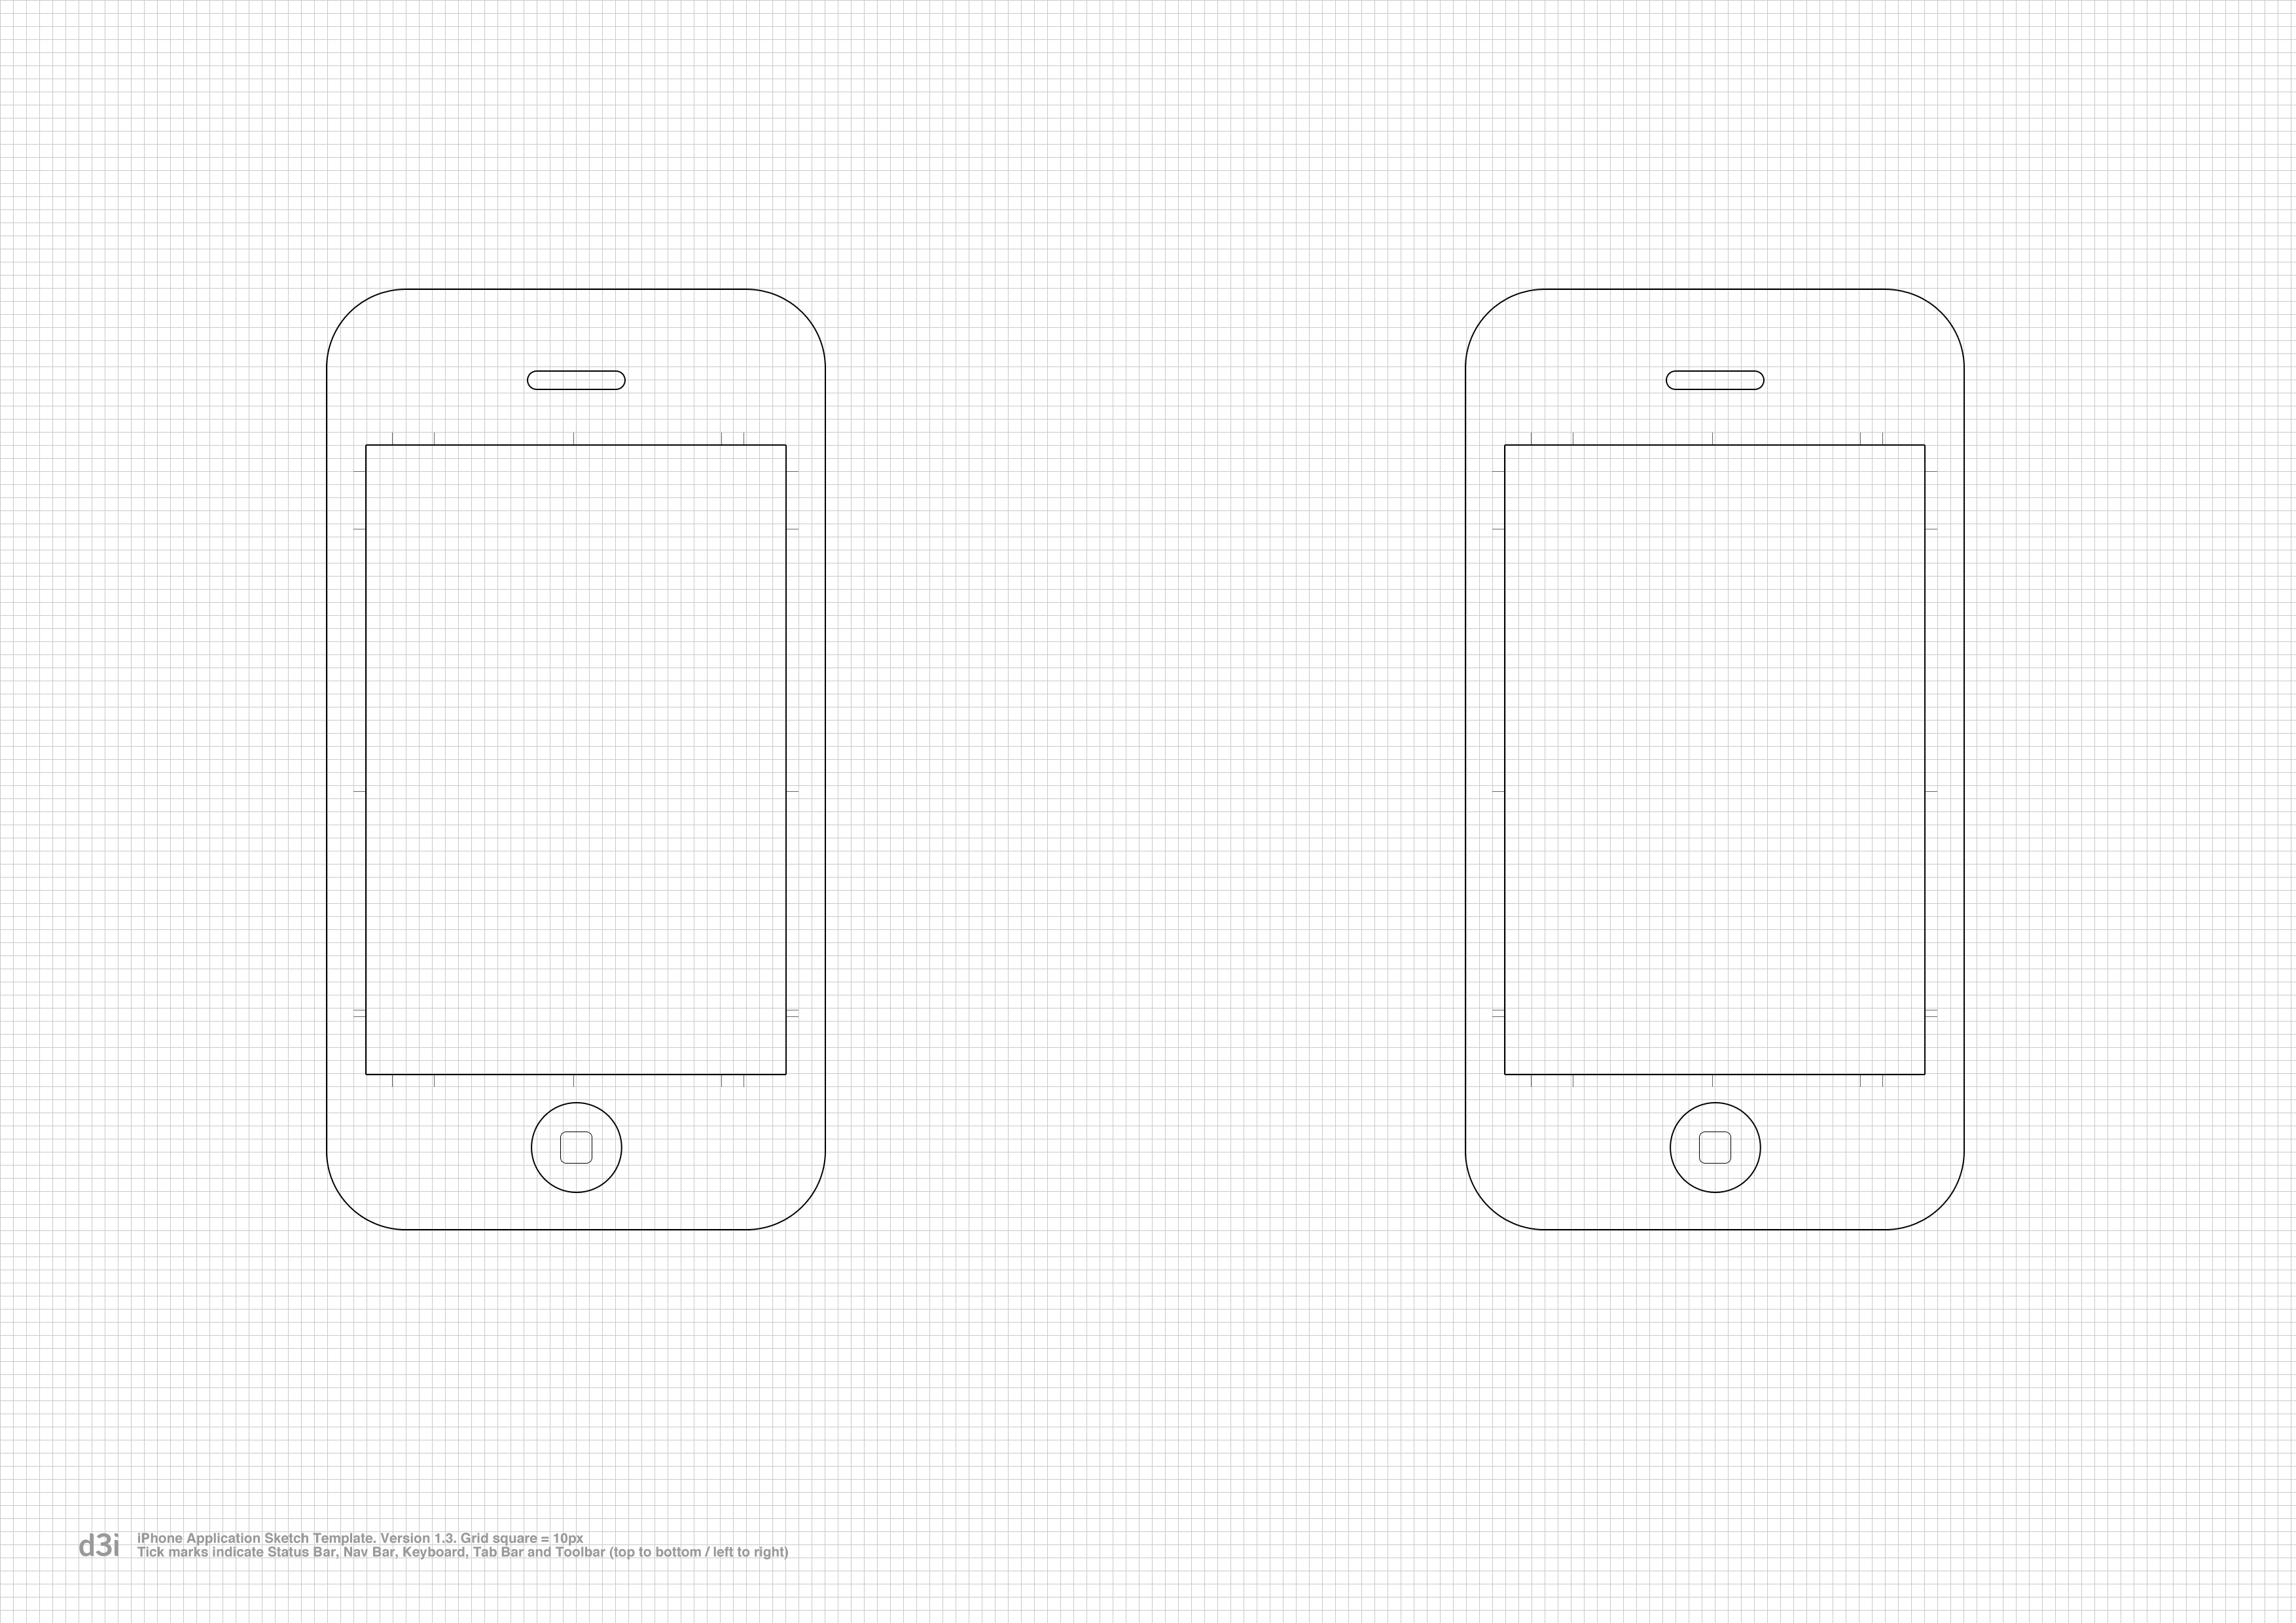 iPhone Application Sketch Template v1.3 | Flickr - Photo ...